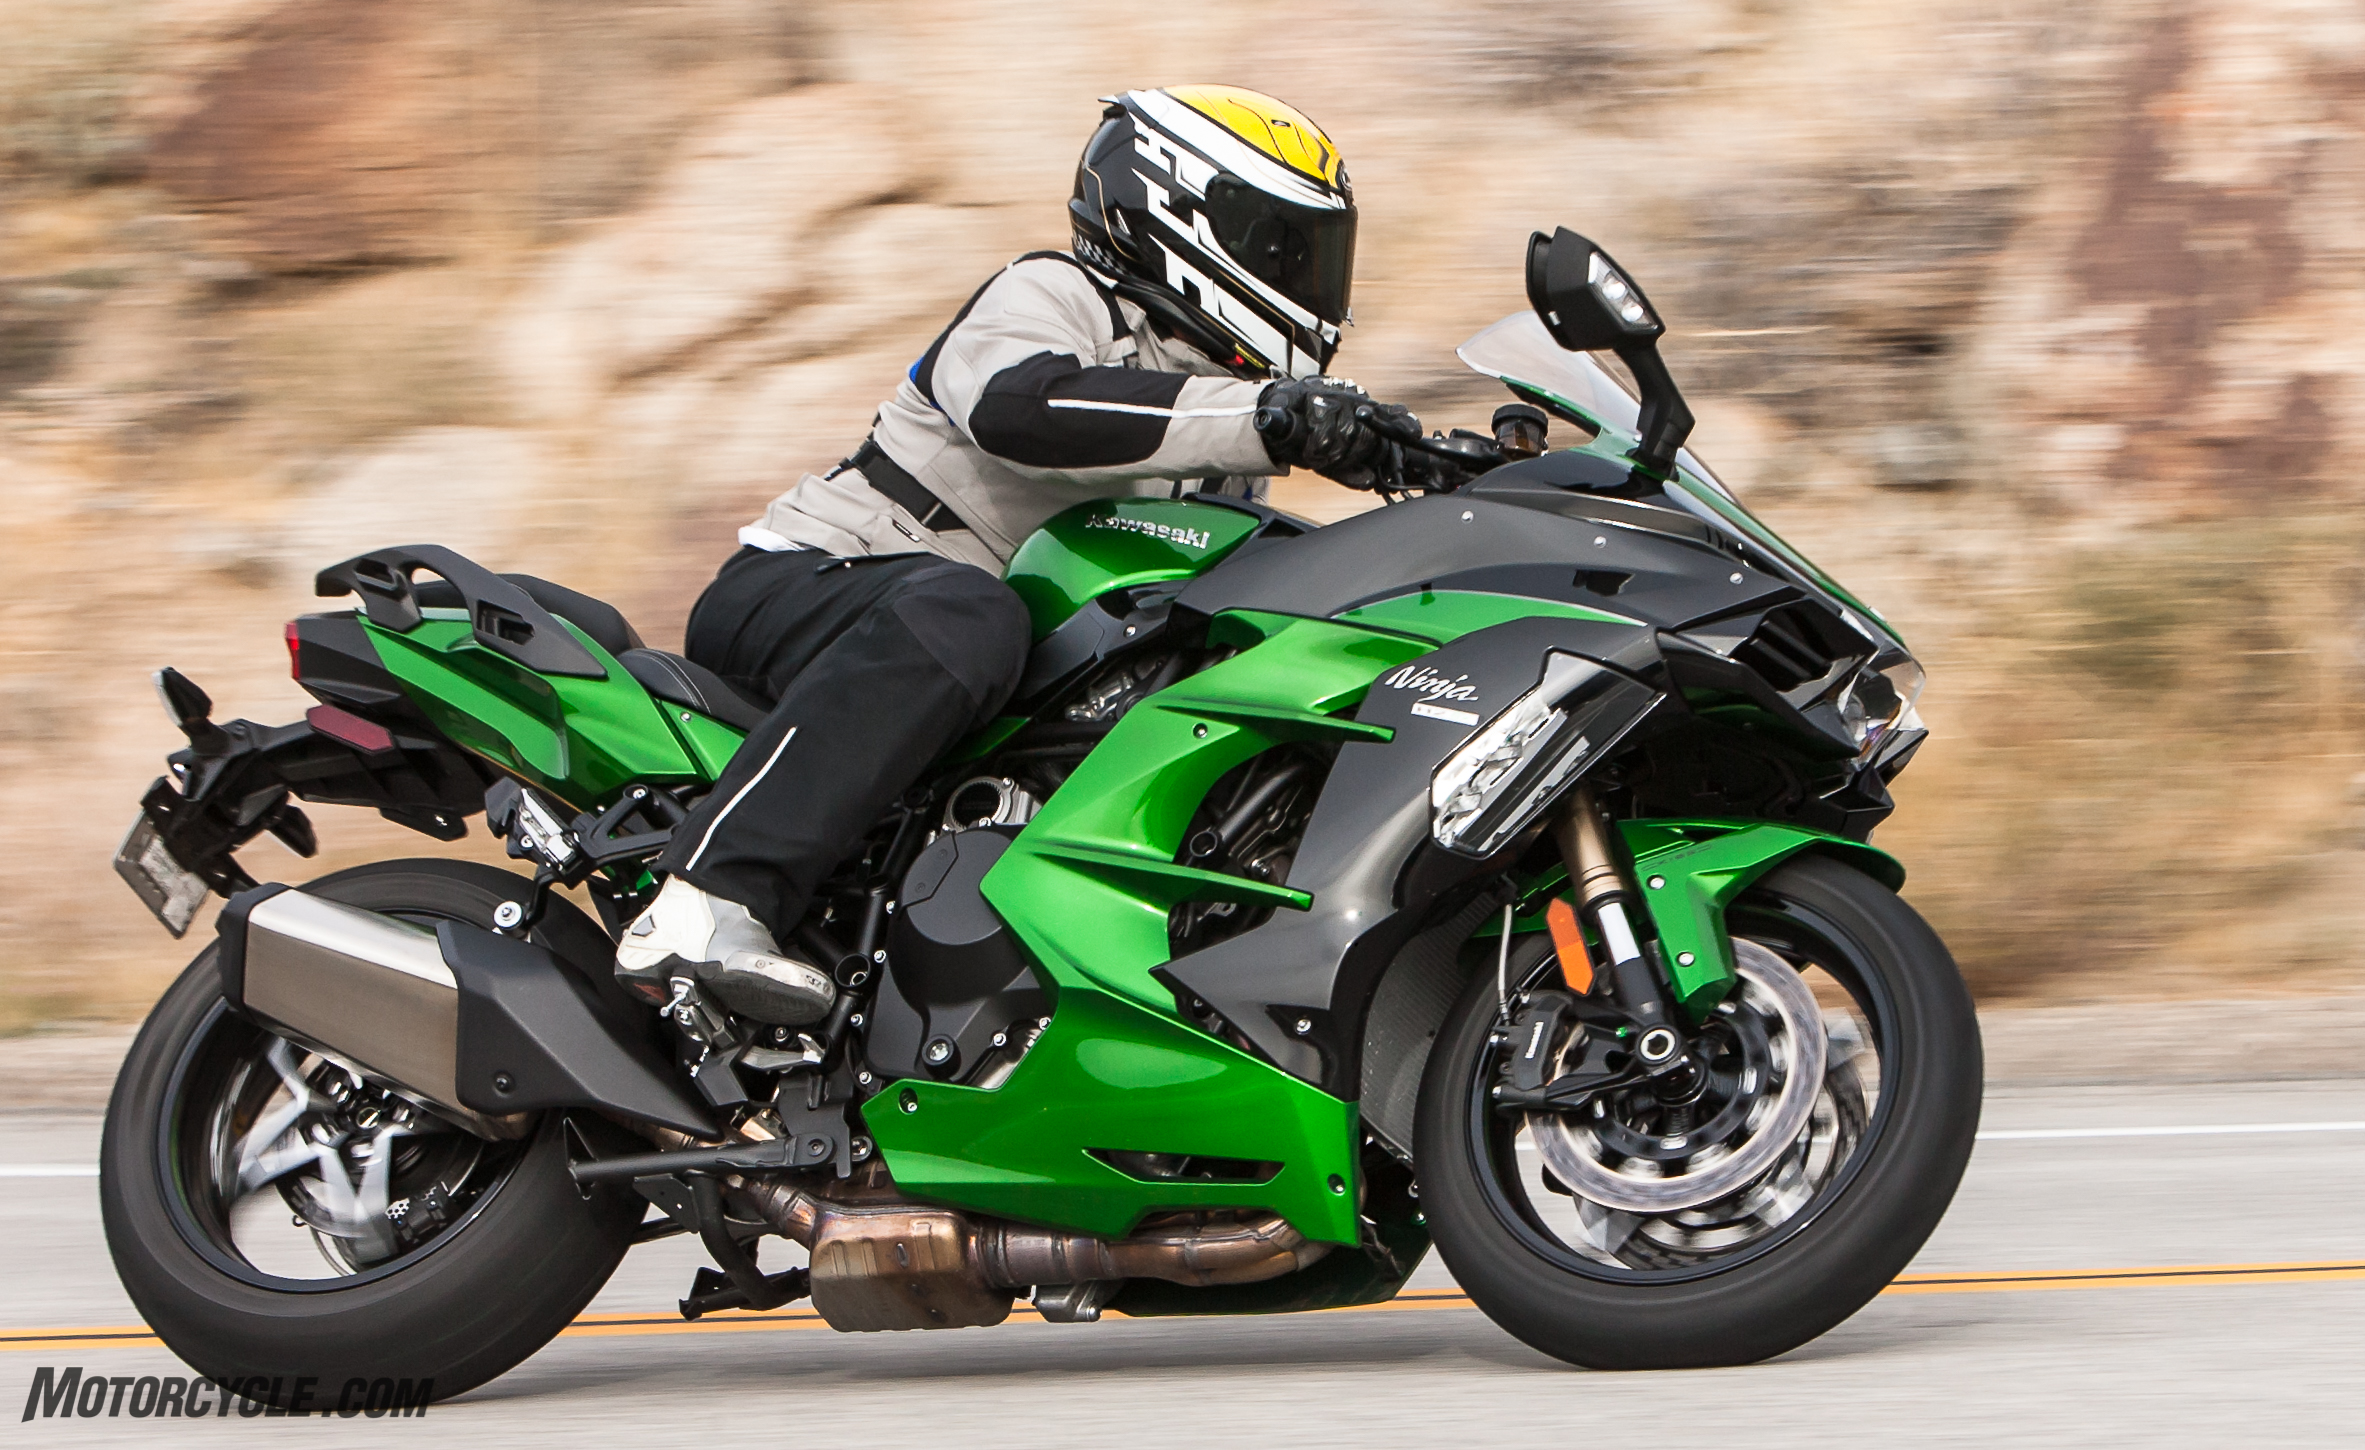 2018 Kawasaki H2 Sx Se Review Motorcycle Com First Ride